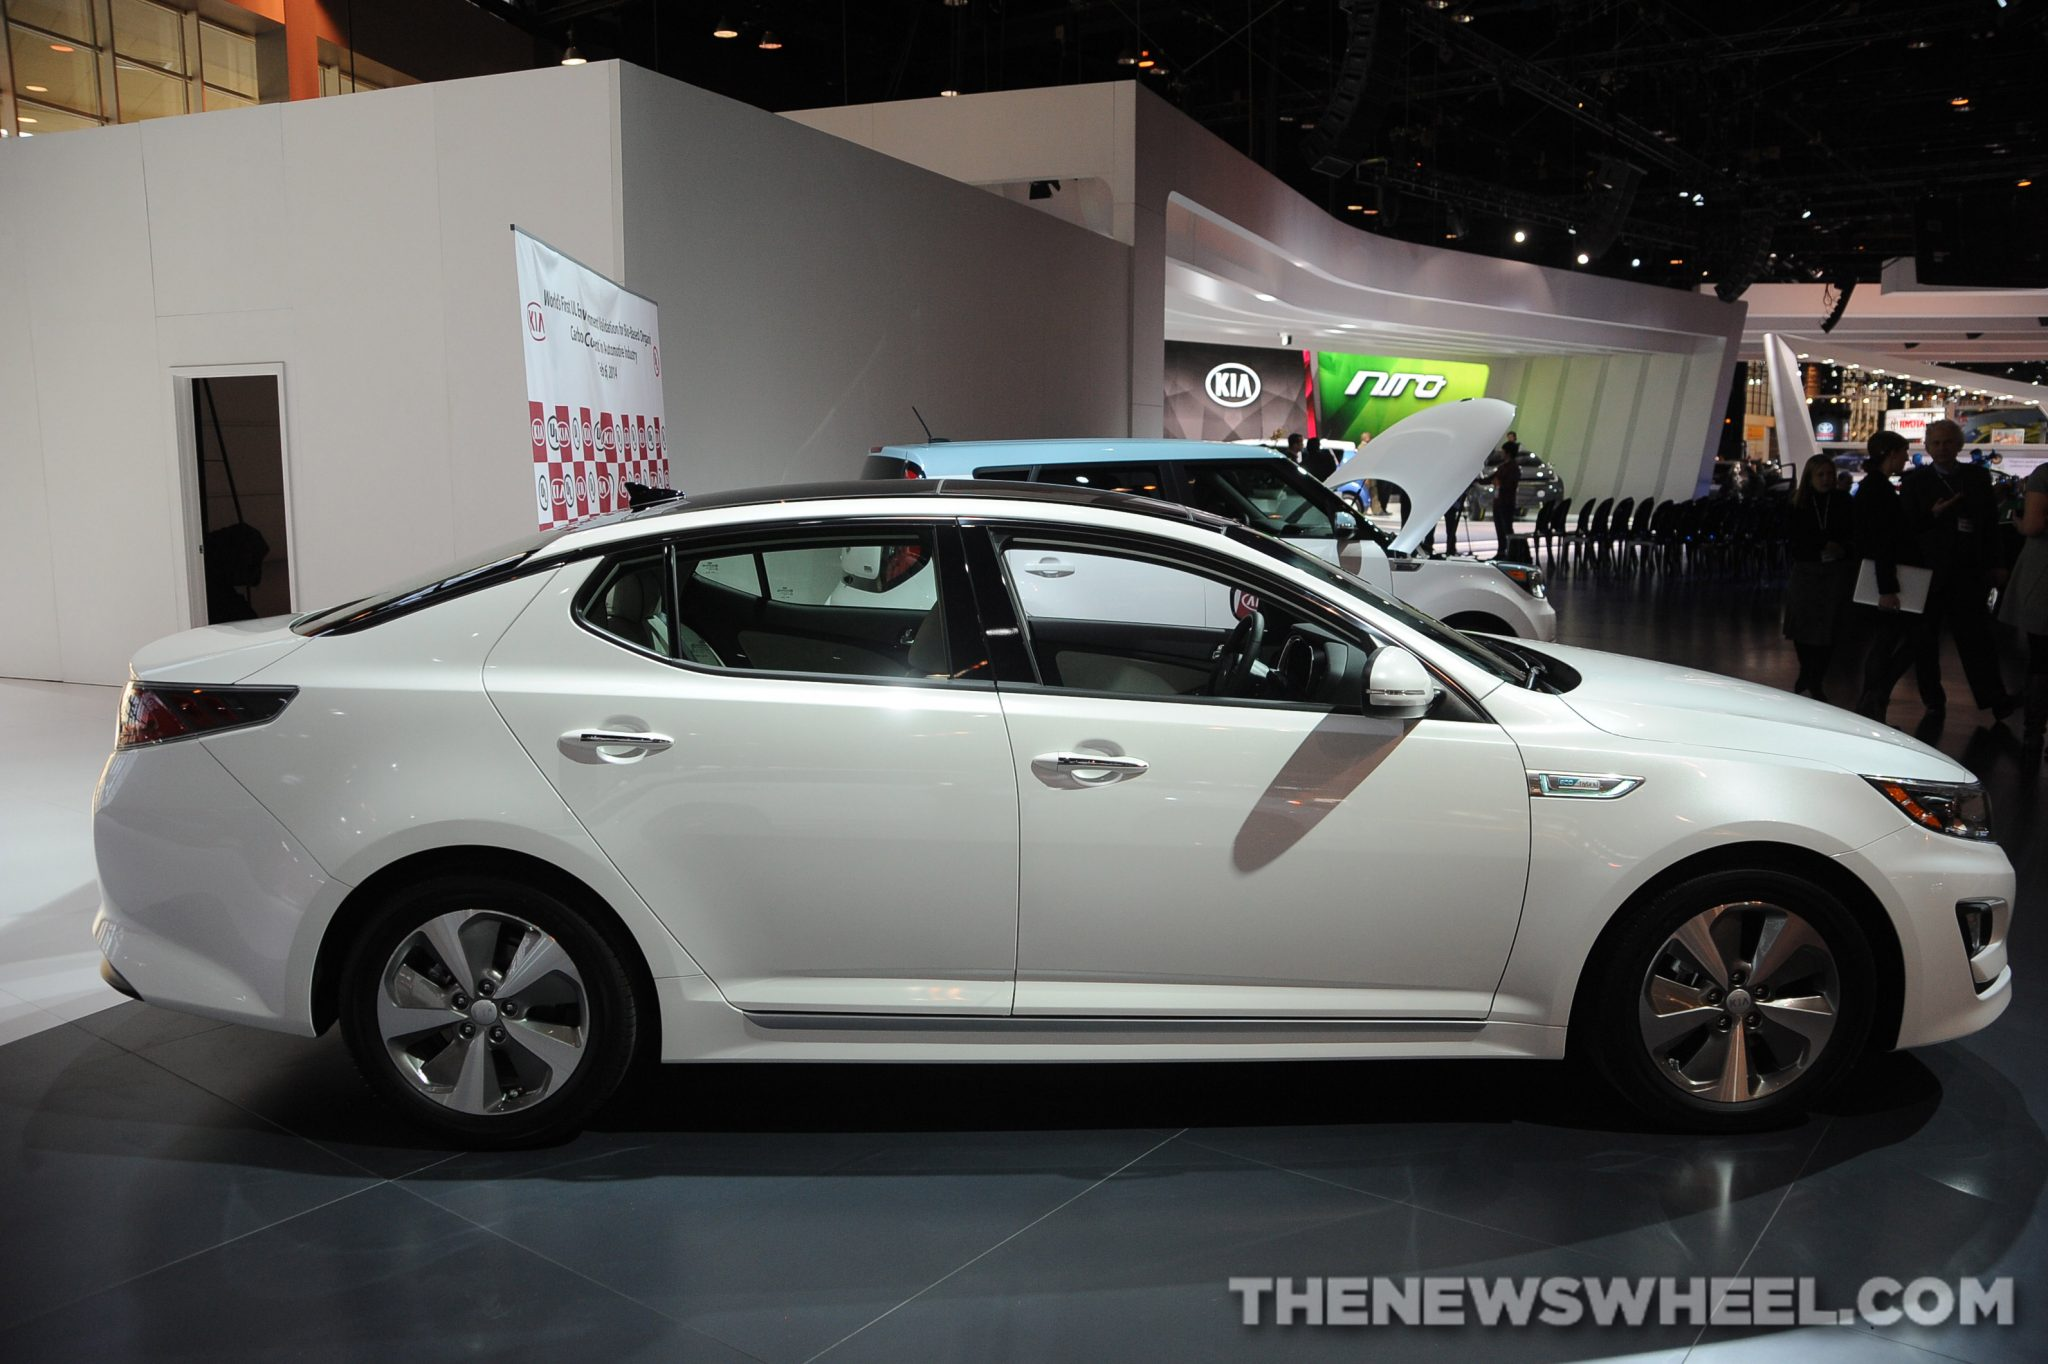 2014 kia optima hybrid overview the news wheel. Black Bedroom Furniture Sets. Home Design Ideas